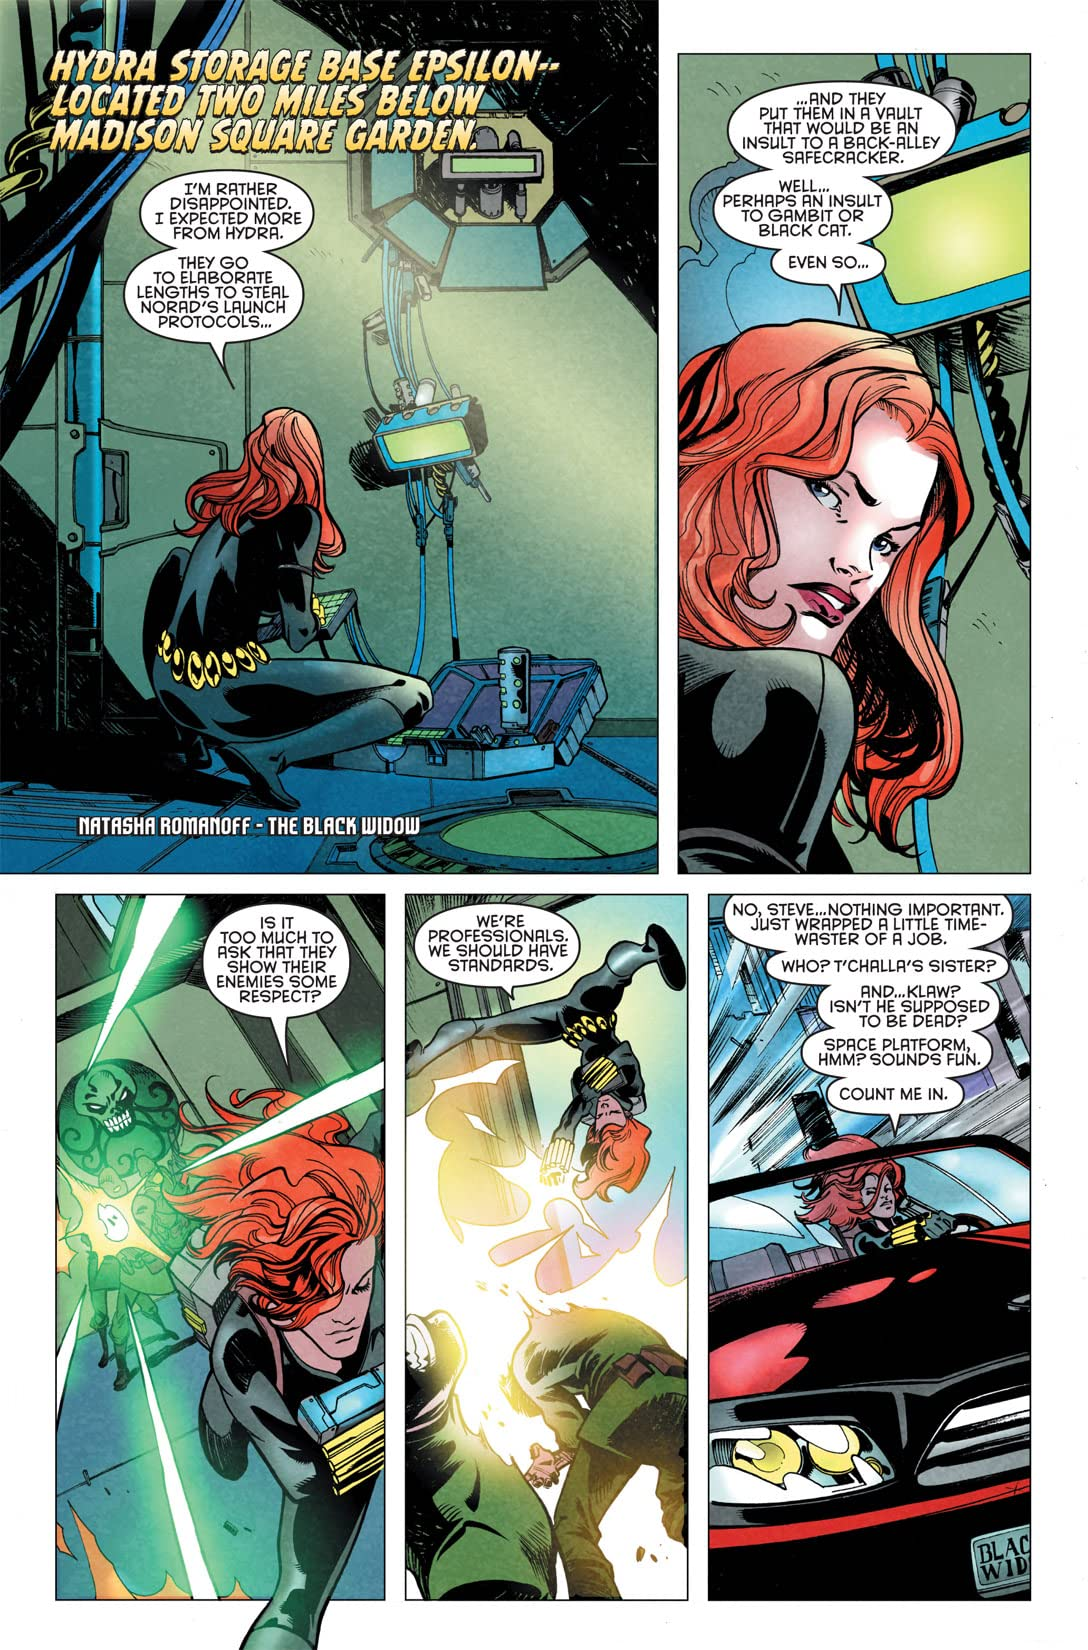 Klaws of the Panther #4 (of 4)